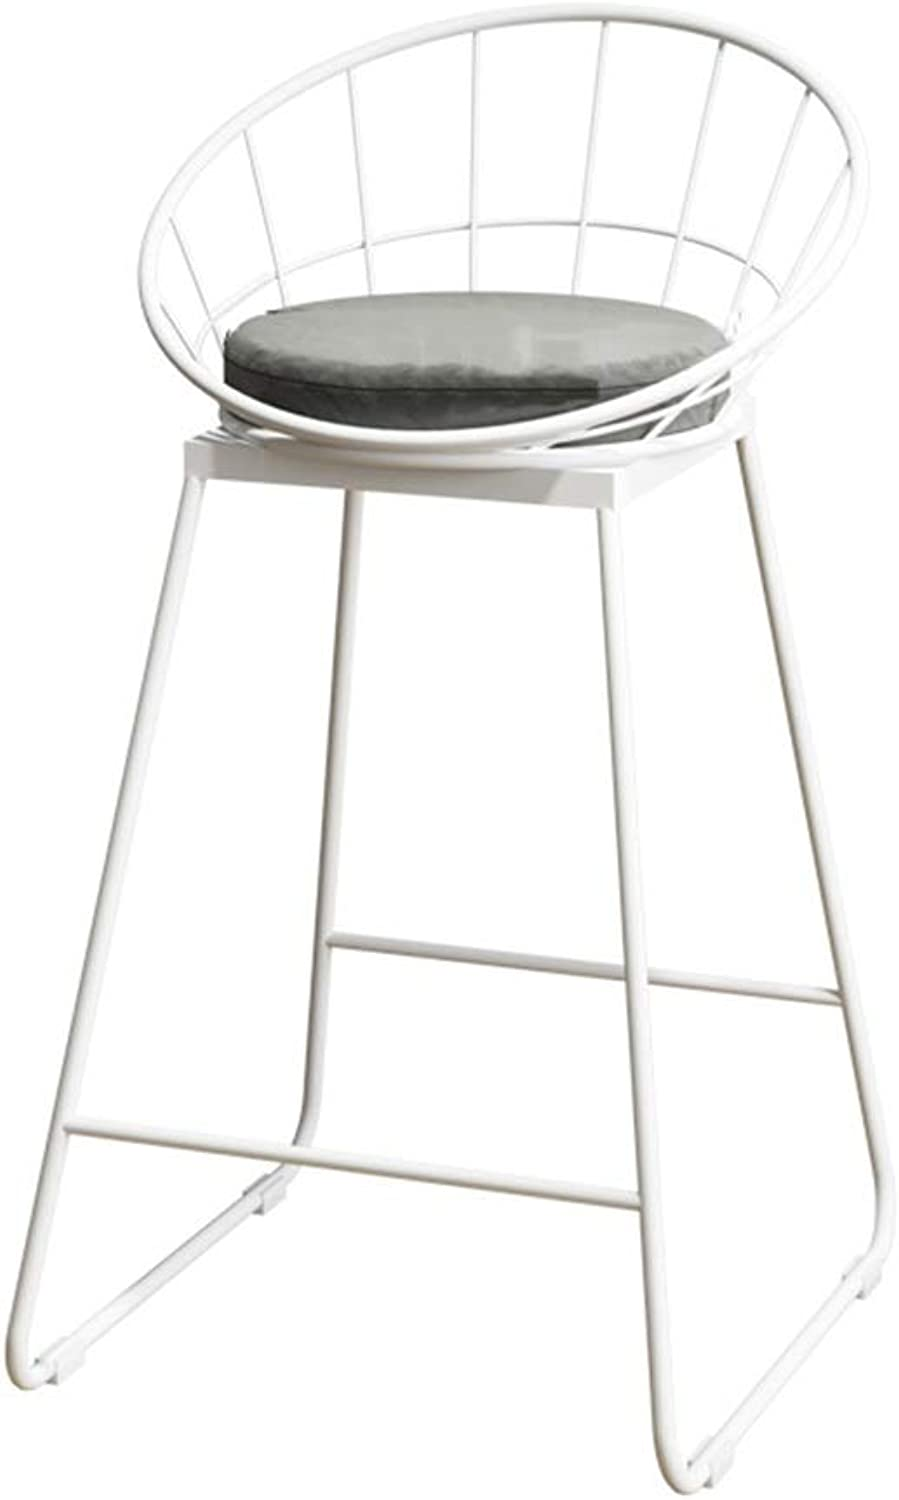 Barstools Chair Bar Stool High Chair Breakfast Chair and Cushion Seat Back Comfort Kitchen Breakfast Counter Greenhouse Bearing 150 Kg White + Grey Mat (Size   42x44x65cm)